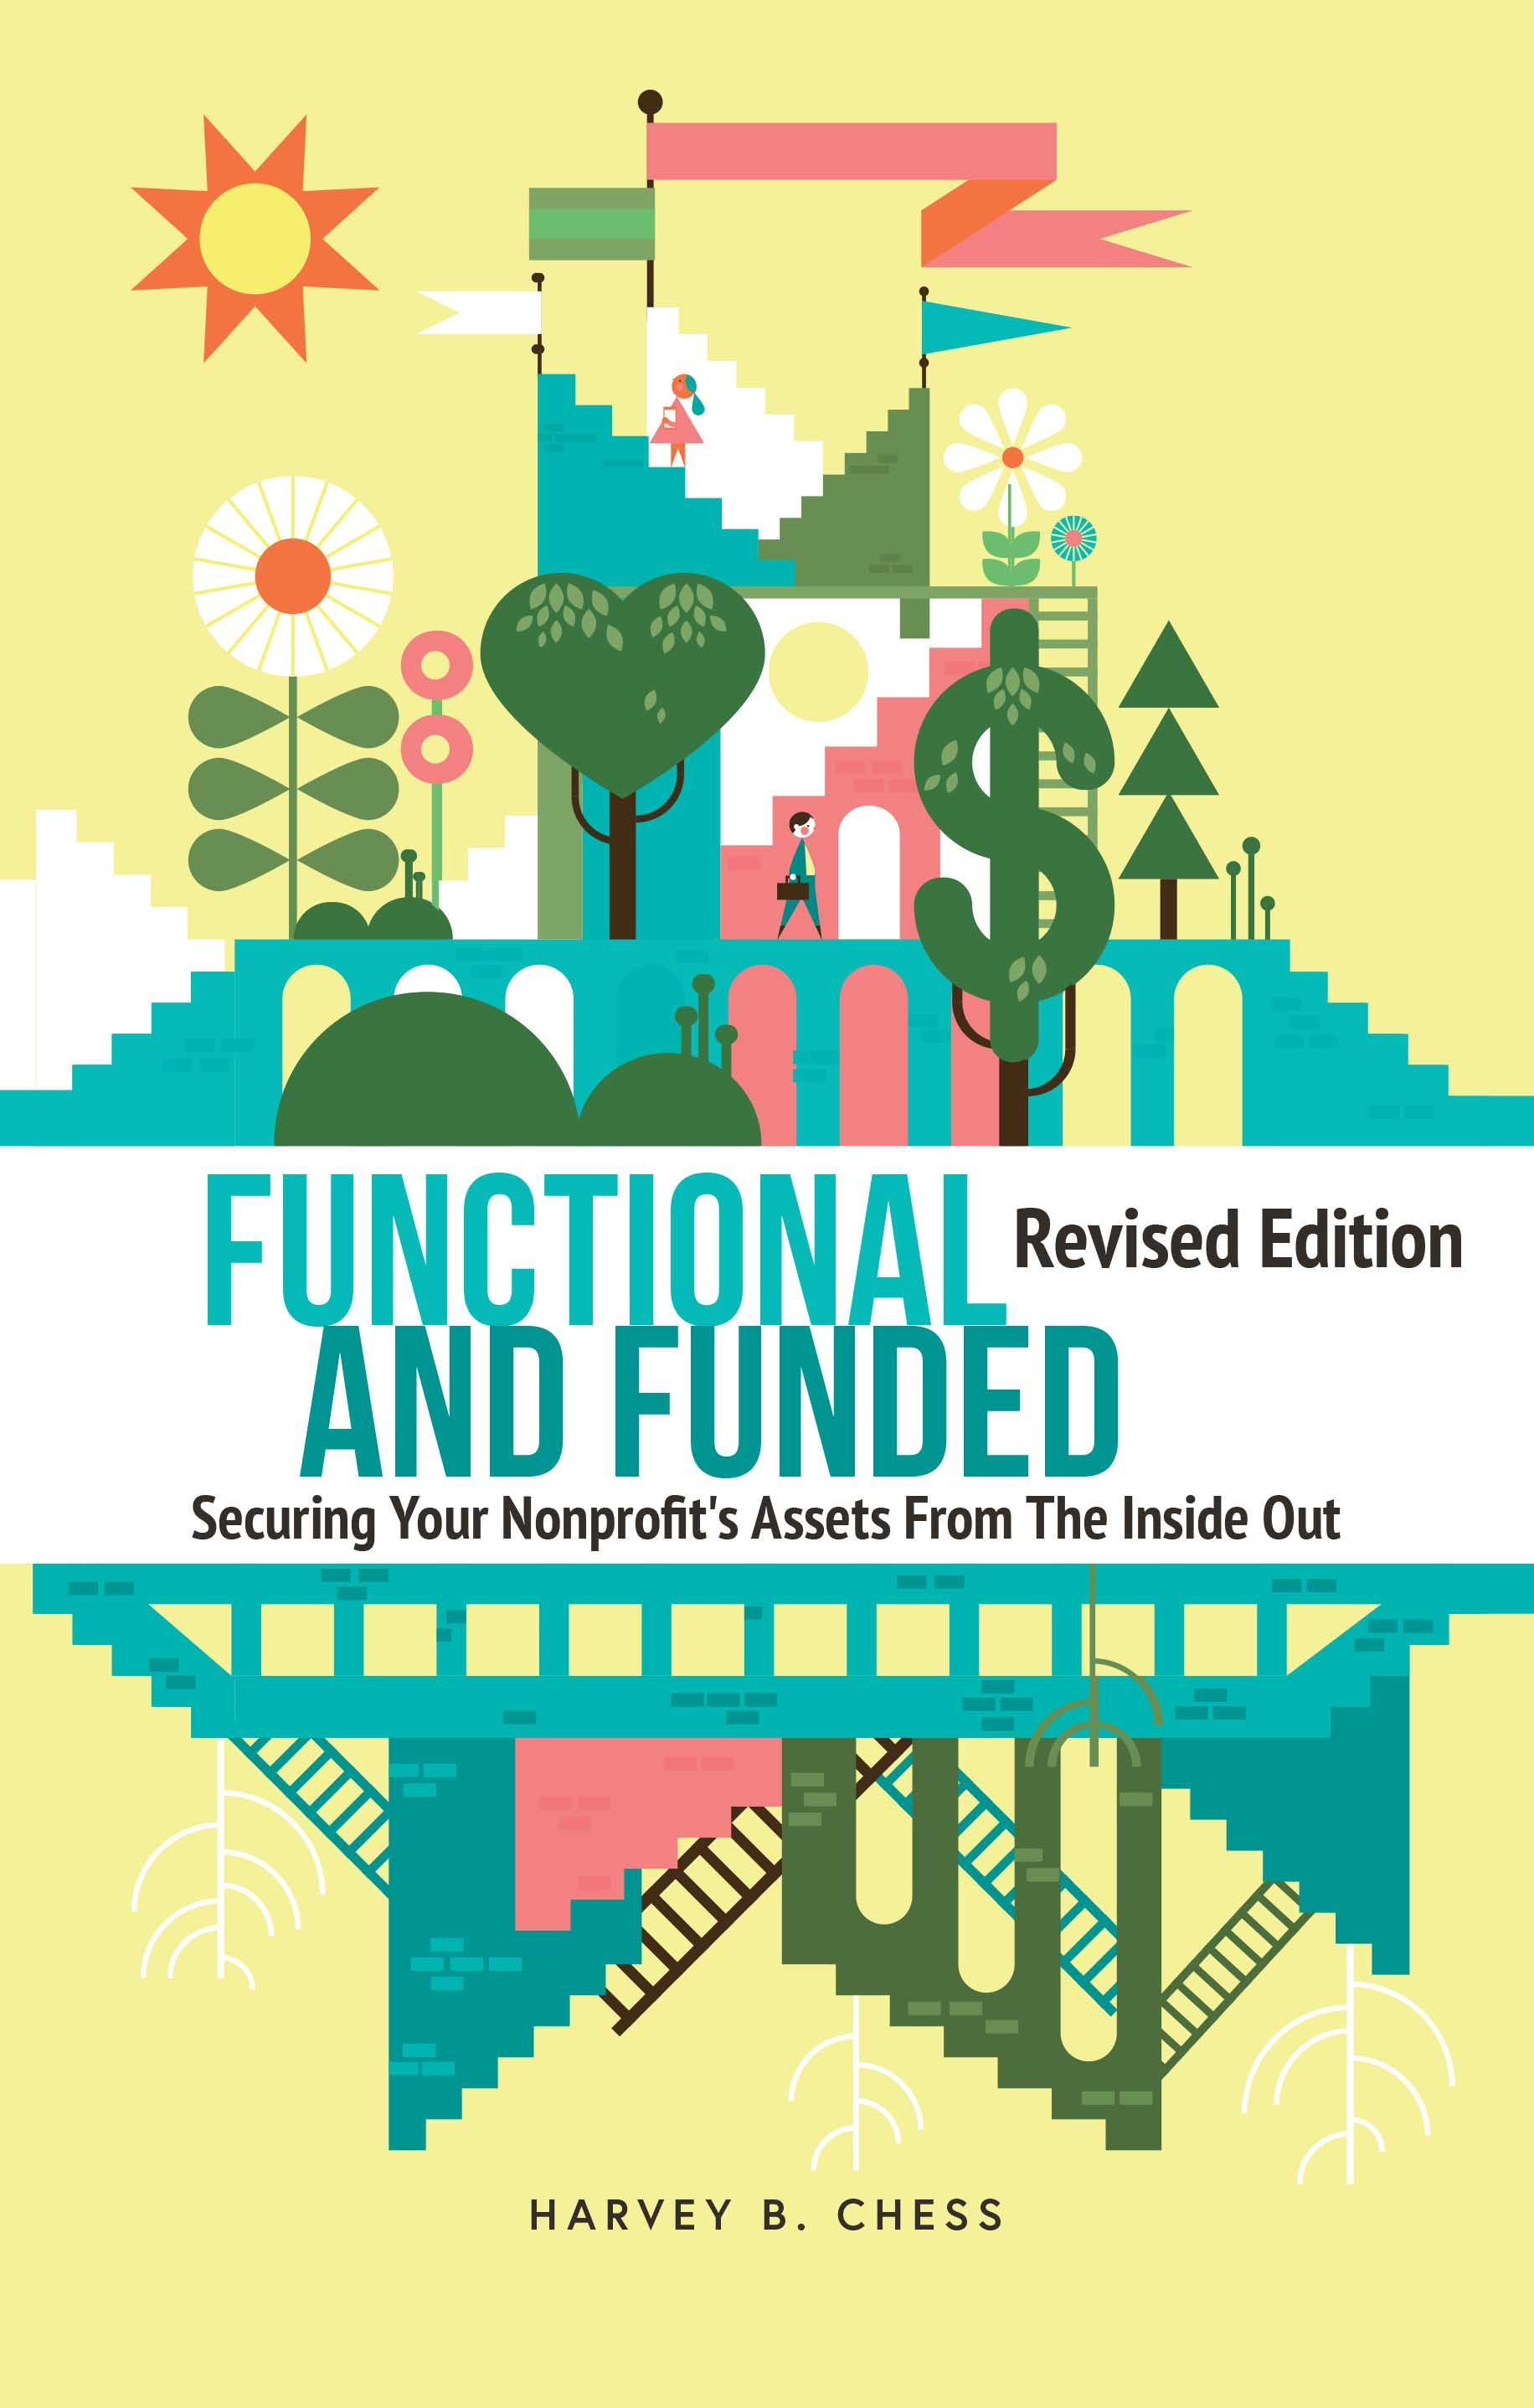 Functional and Funded